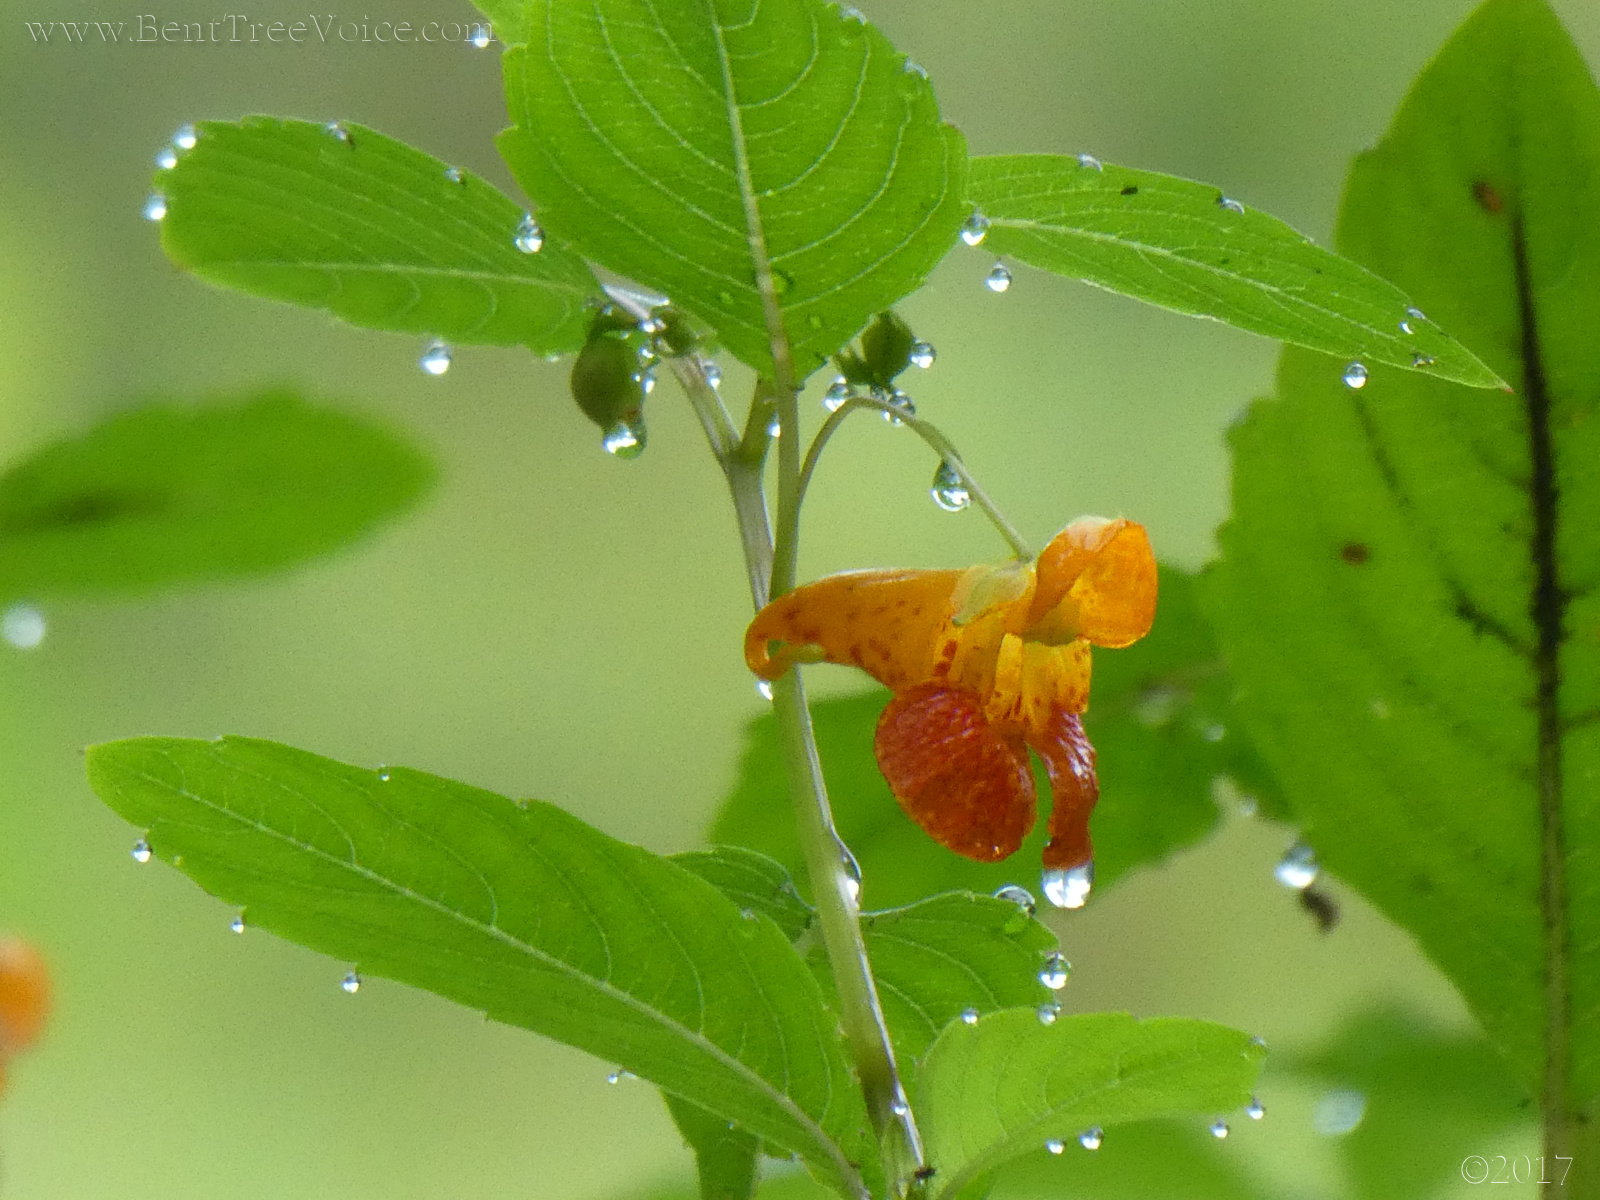 August 13, 2017 - Jewelweed in Bent Tree